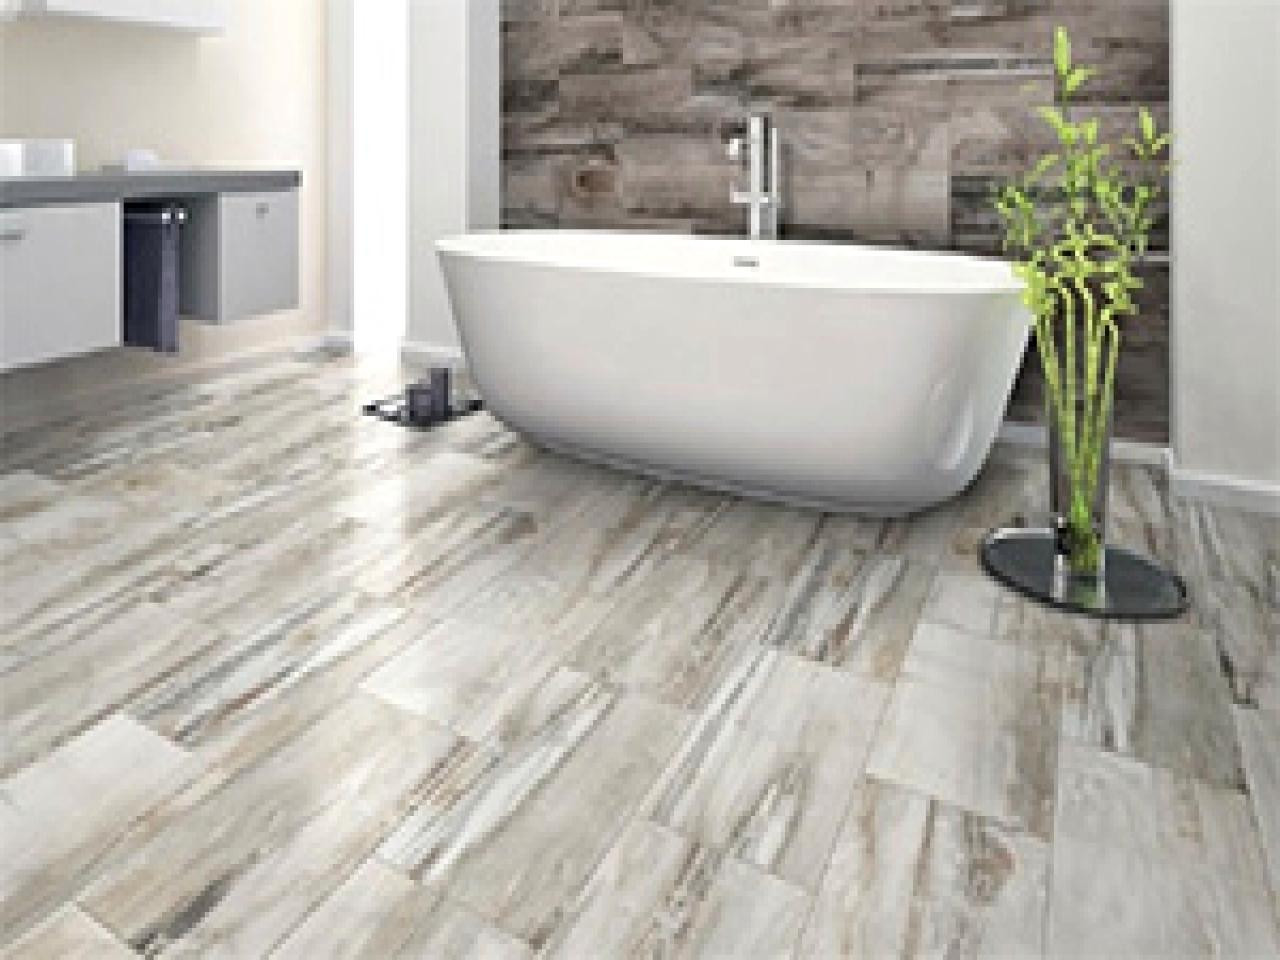 hardwood porcelain tile flooring of smart wood grain tile bathroom od tile bathroom floor wood look pertaining to smart wood grain tile bathroom od tile bathroom floor wood look porcelain tile pros and cons wood grain tile no grout what size grout line for x tile